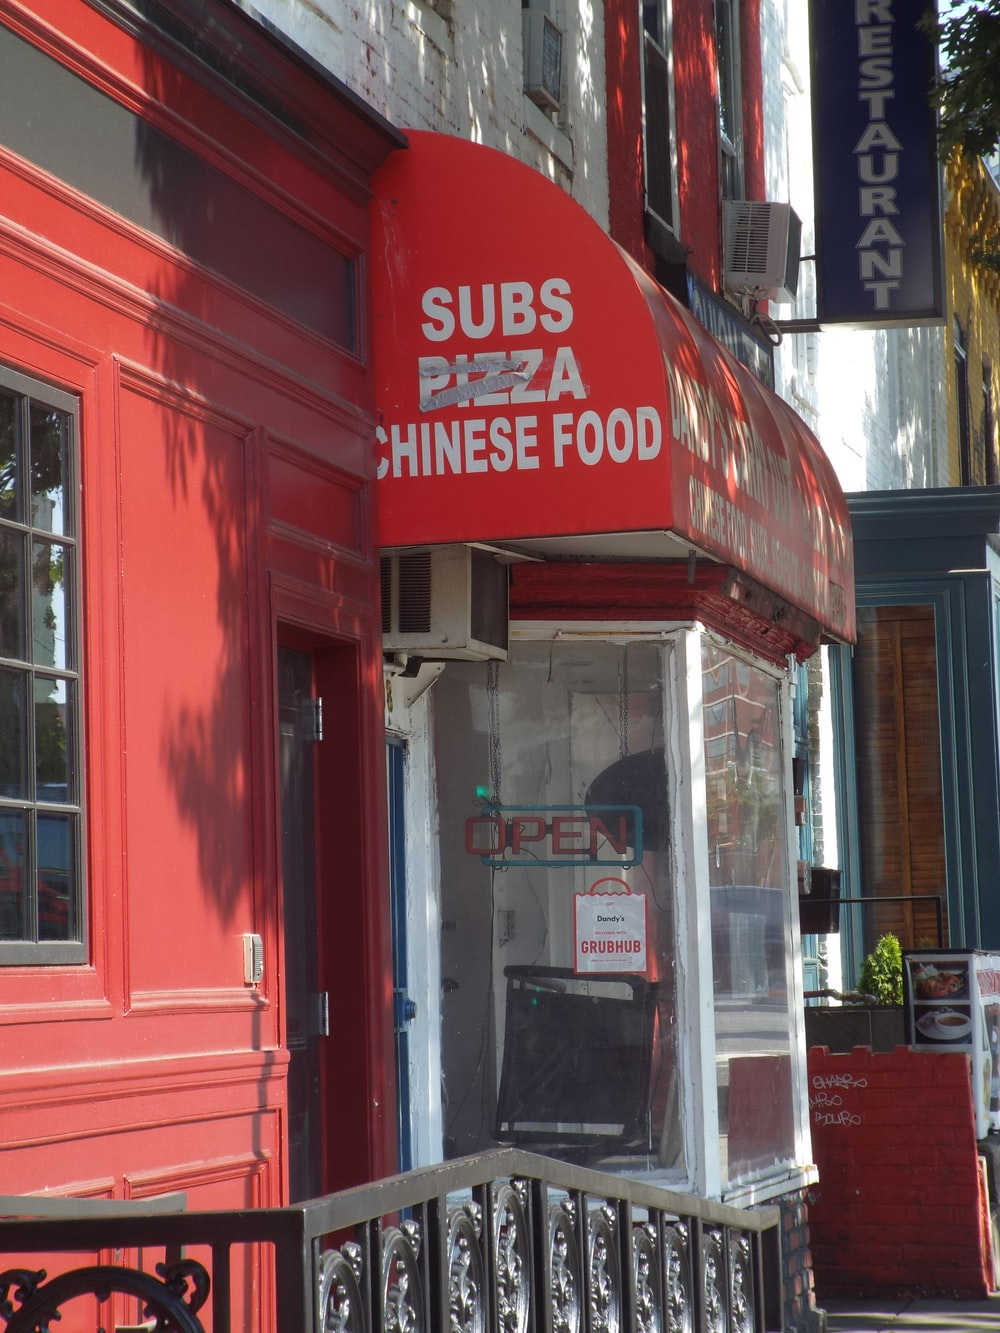 Subs Pizza Chinese Food stall